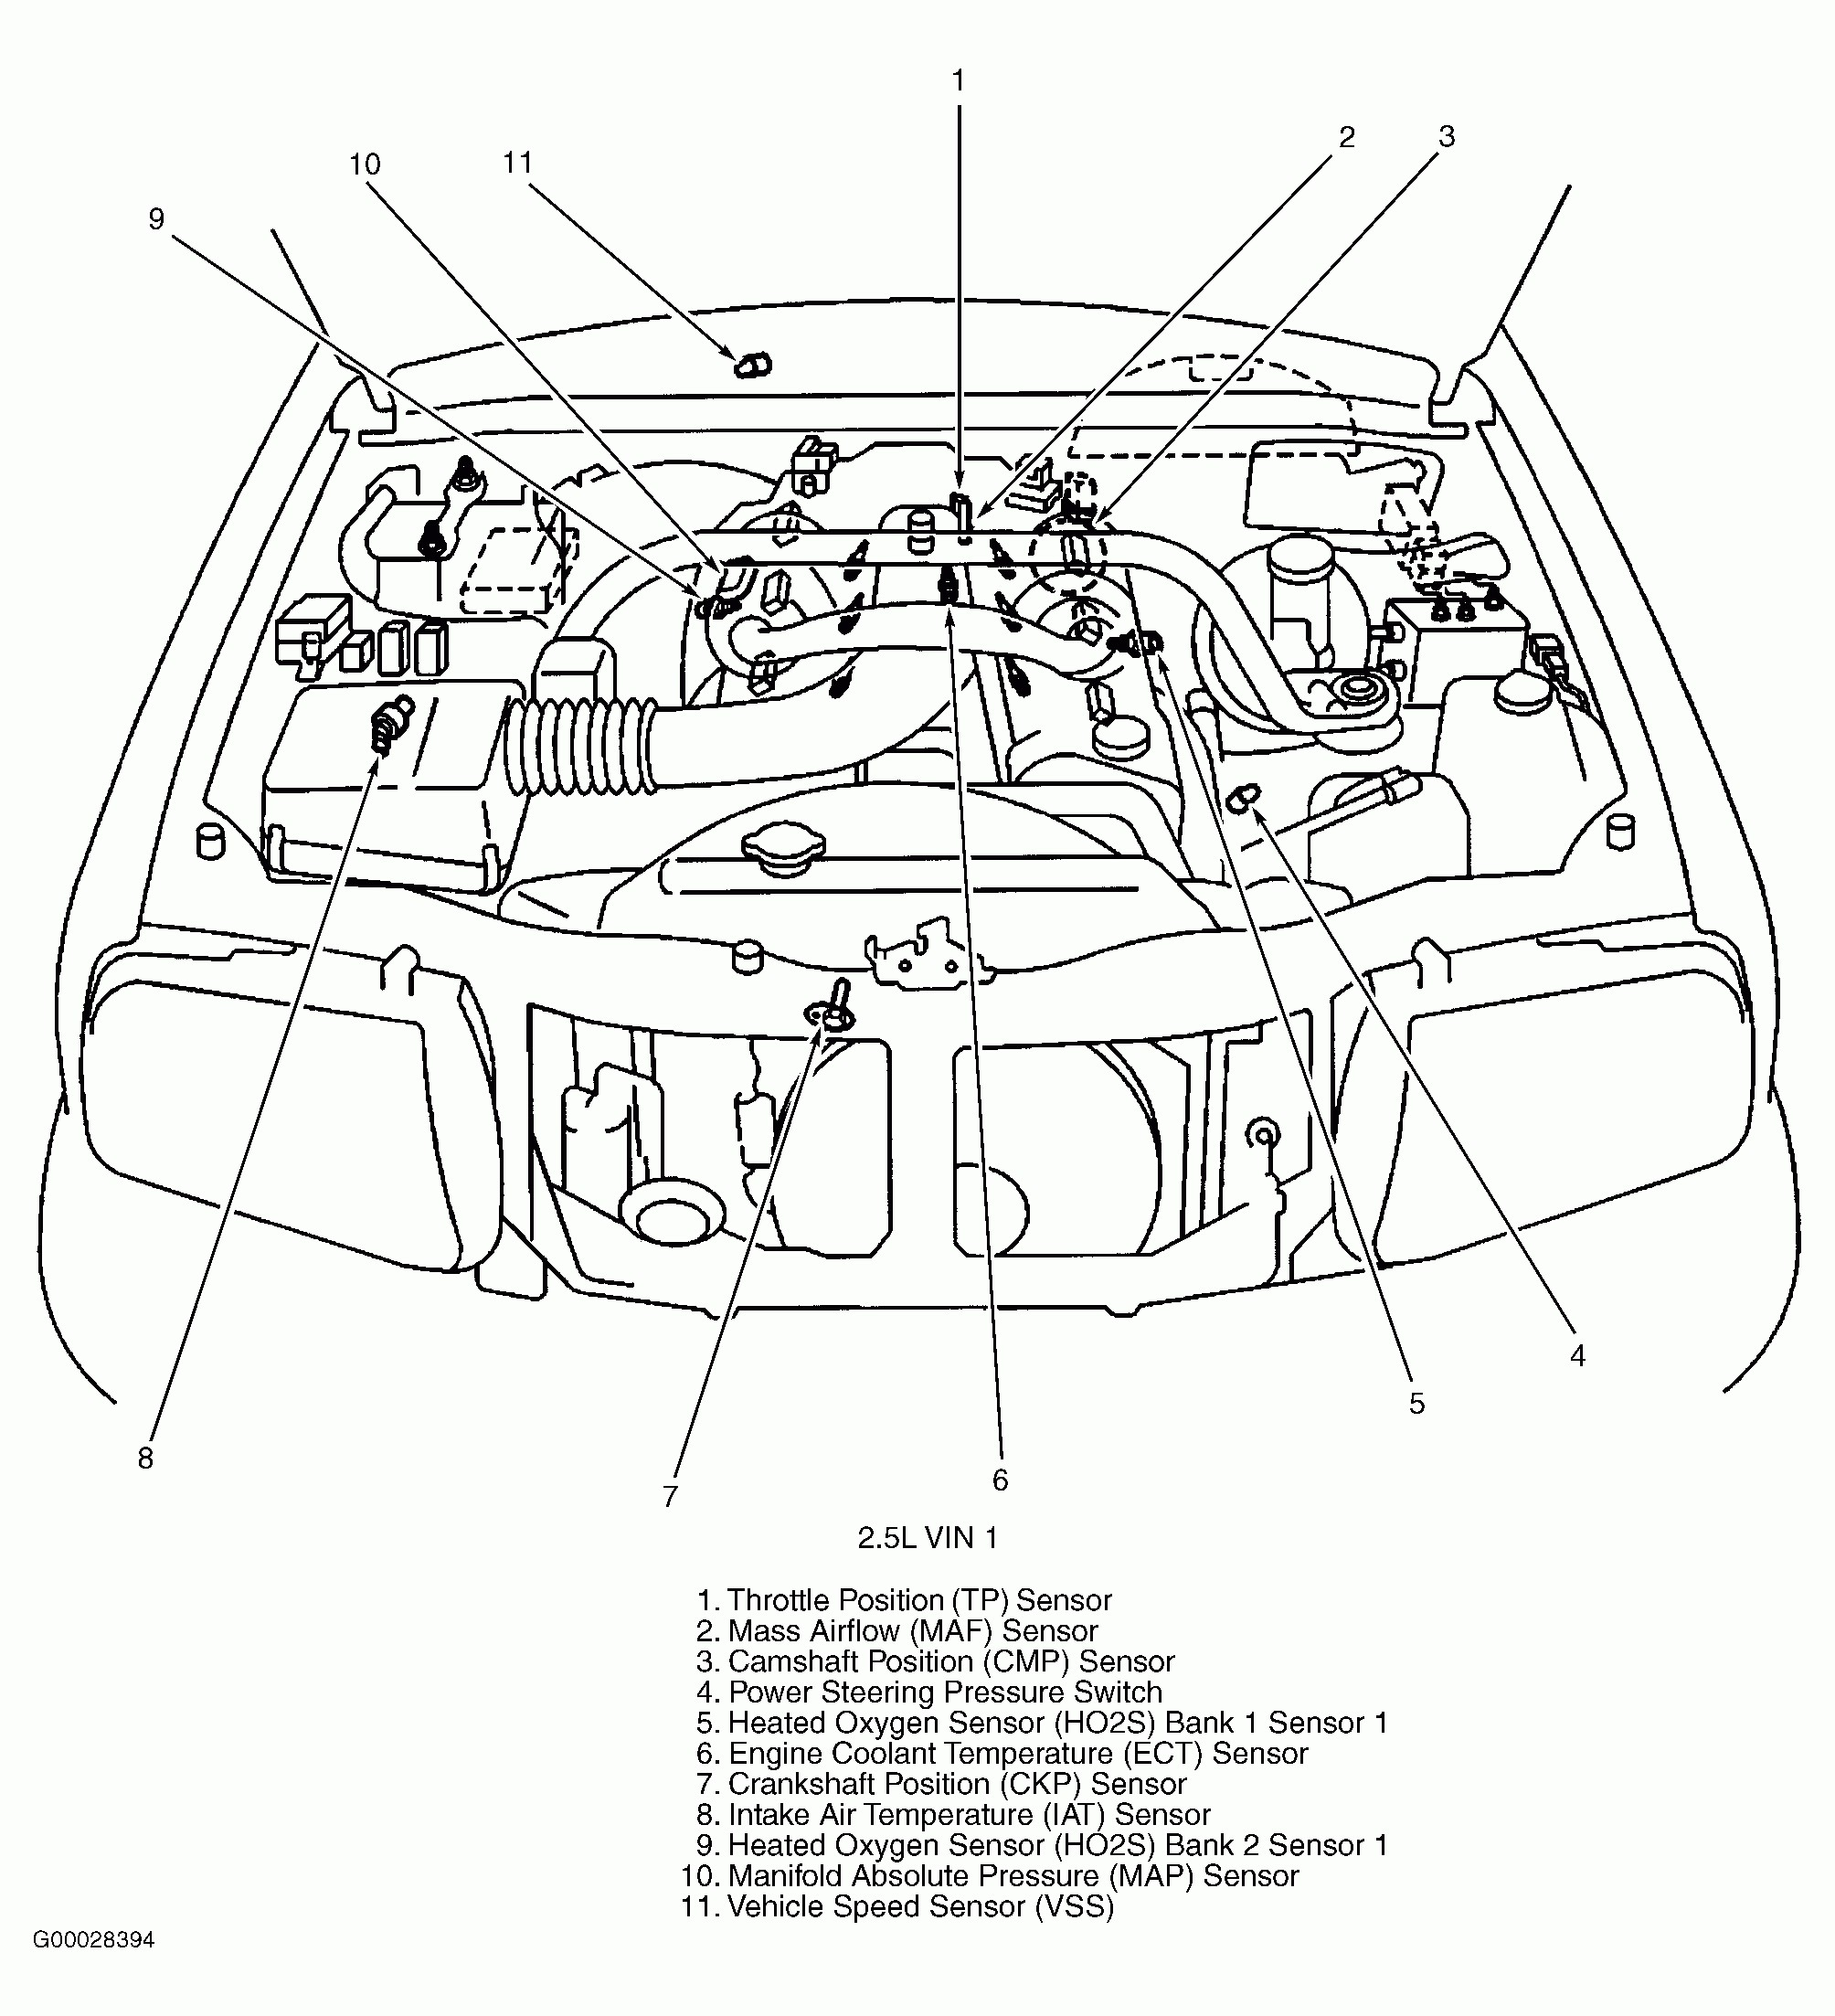 2002 Chevy Tracker Engine Diagram My Wiring Diagram